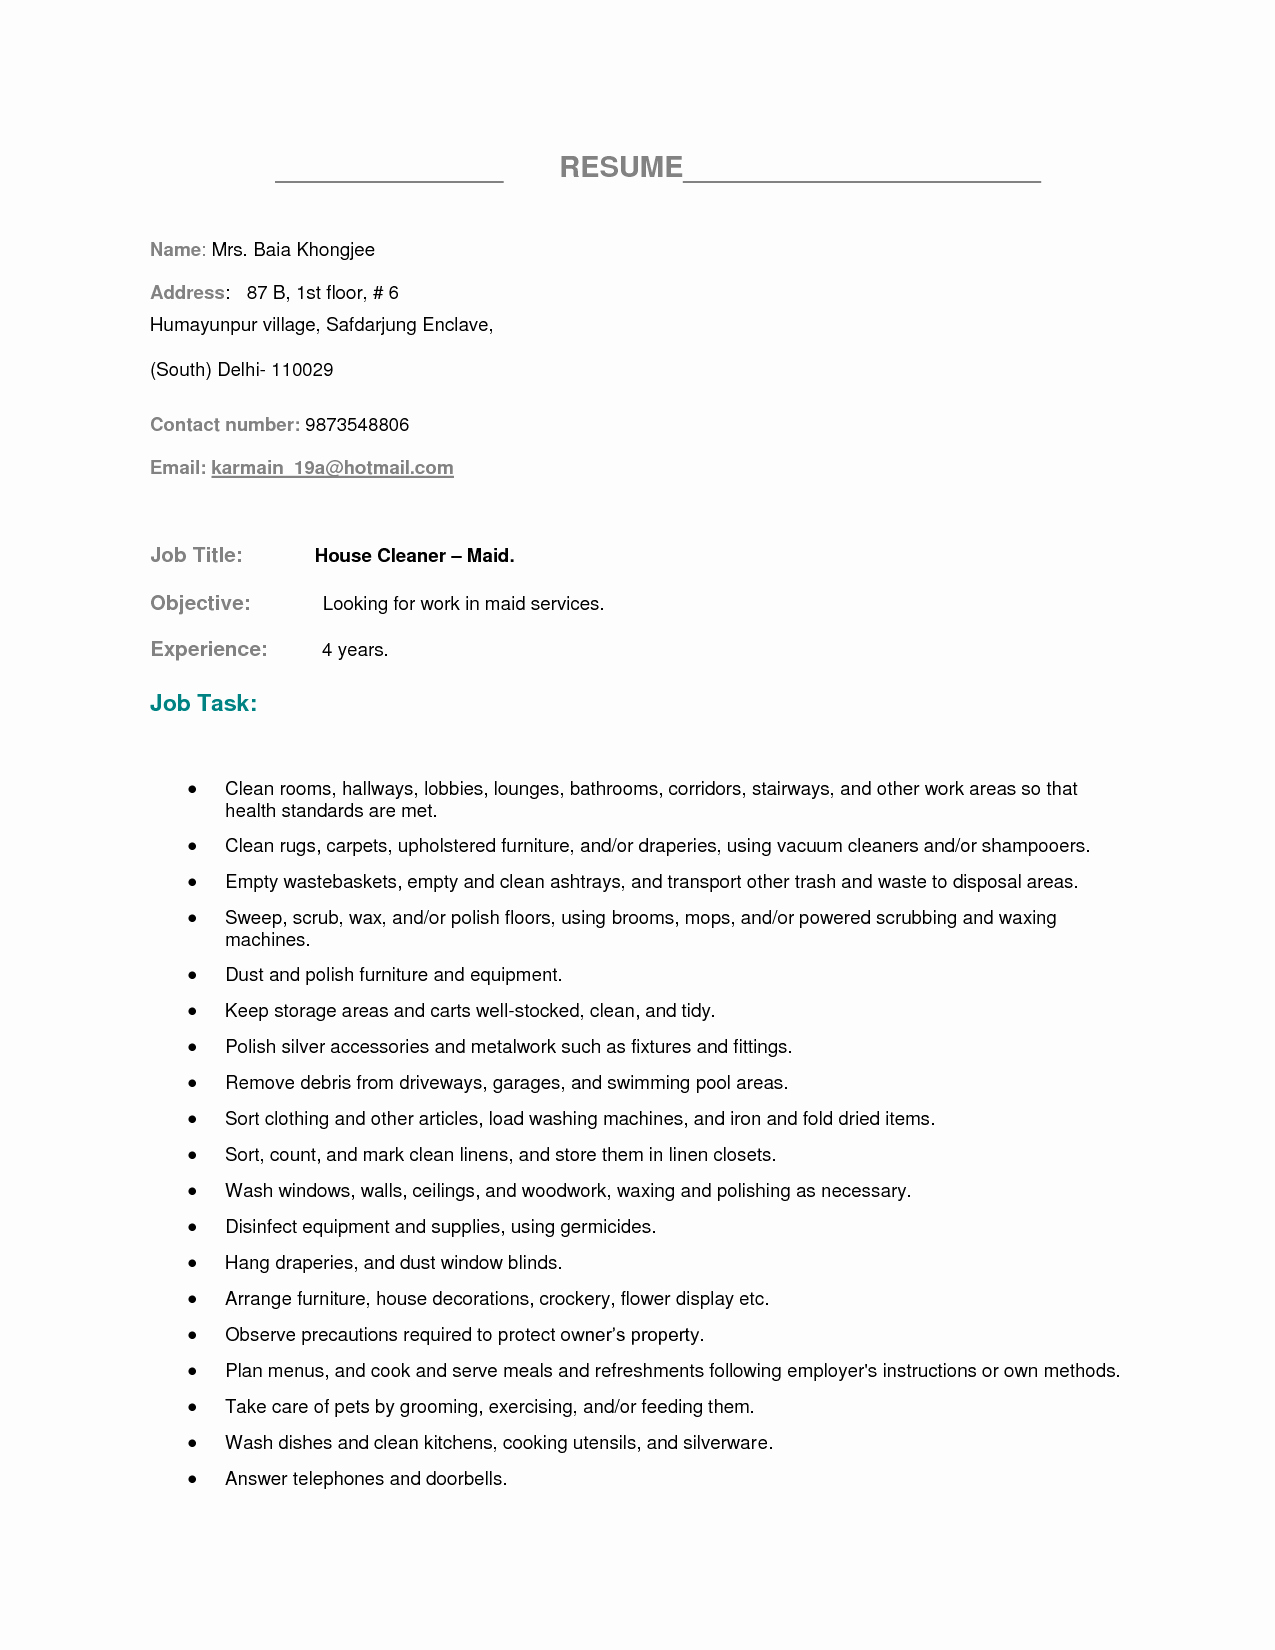 Housekeeping Skills Resume Template Room attendant No